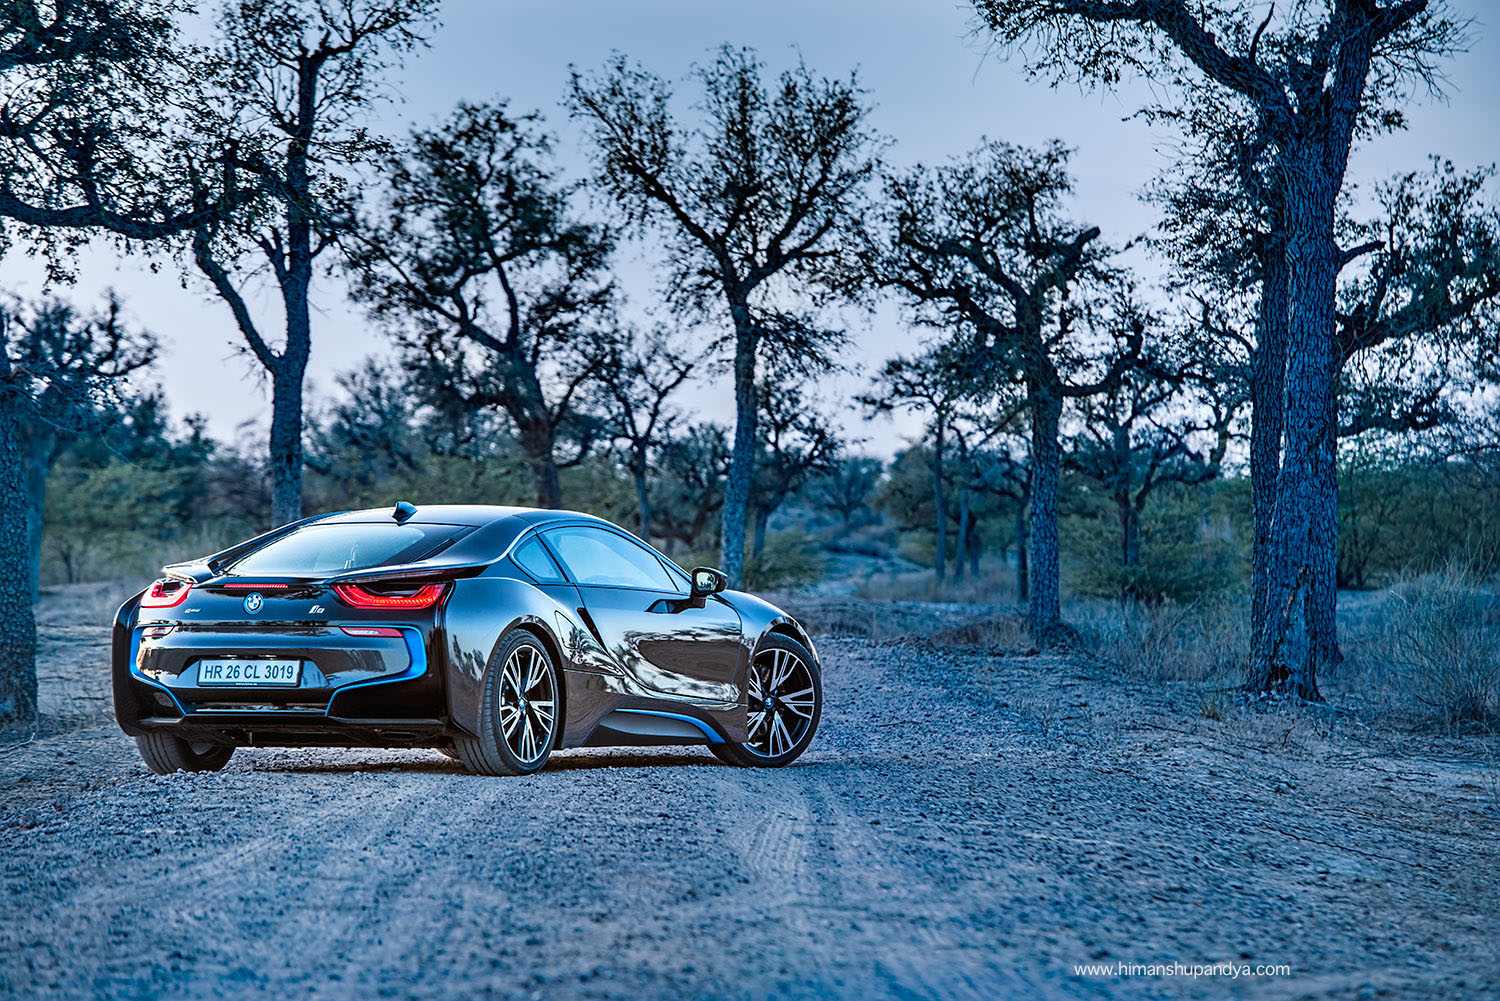 BMW i8  see more  AUTOMOTIVE